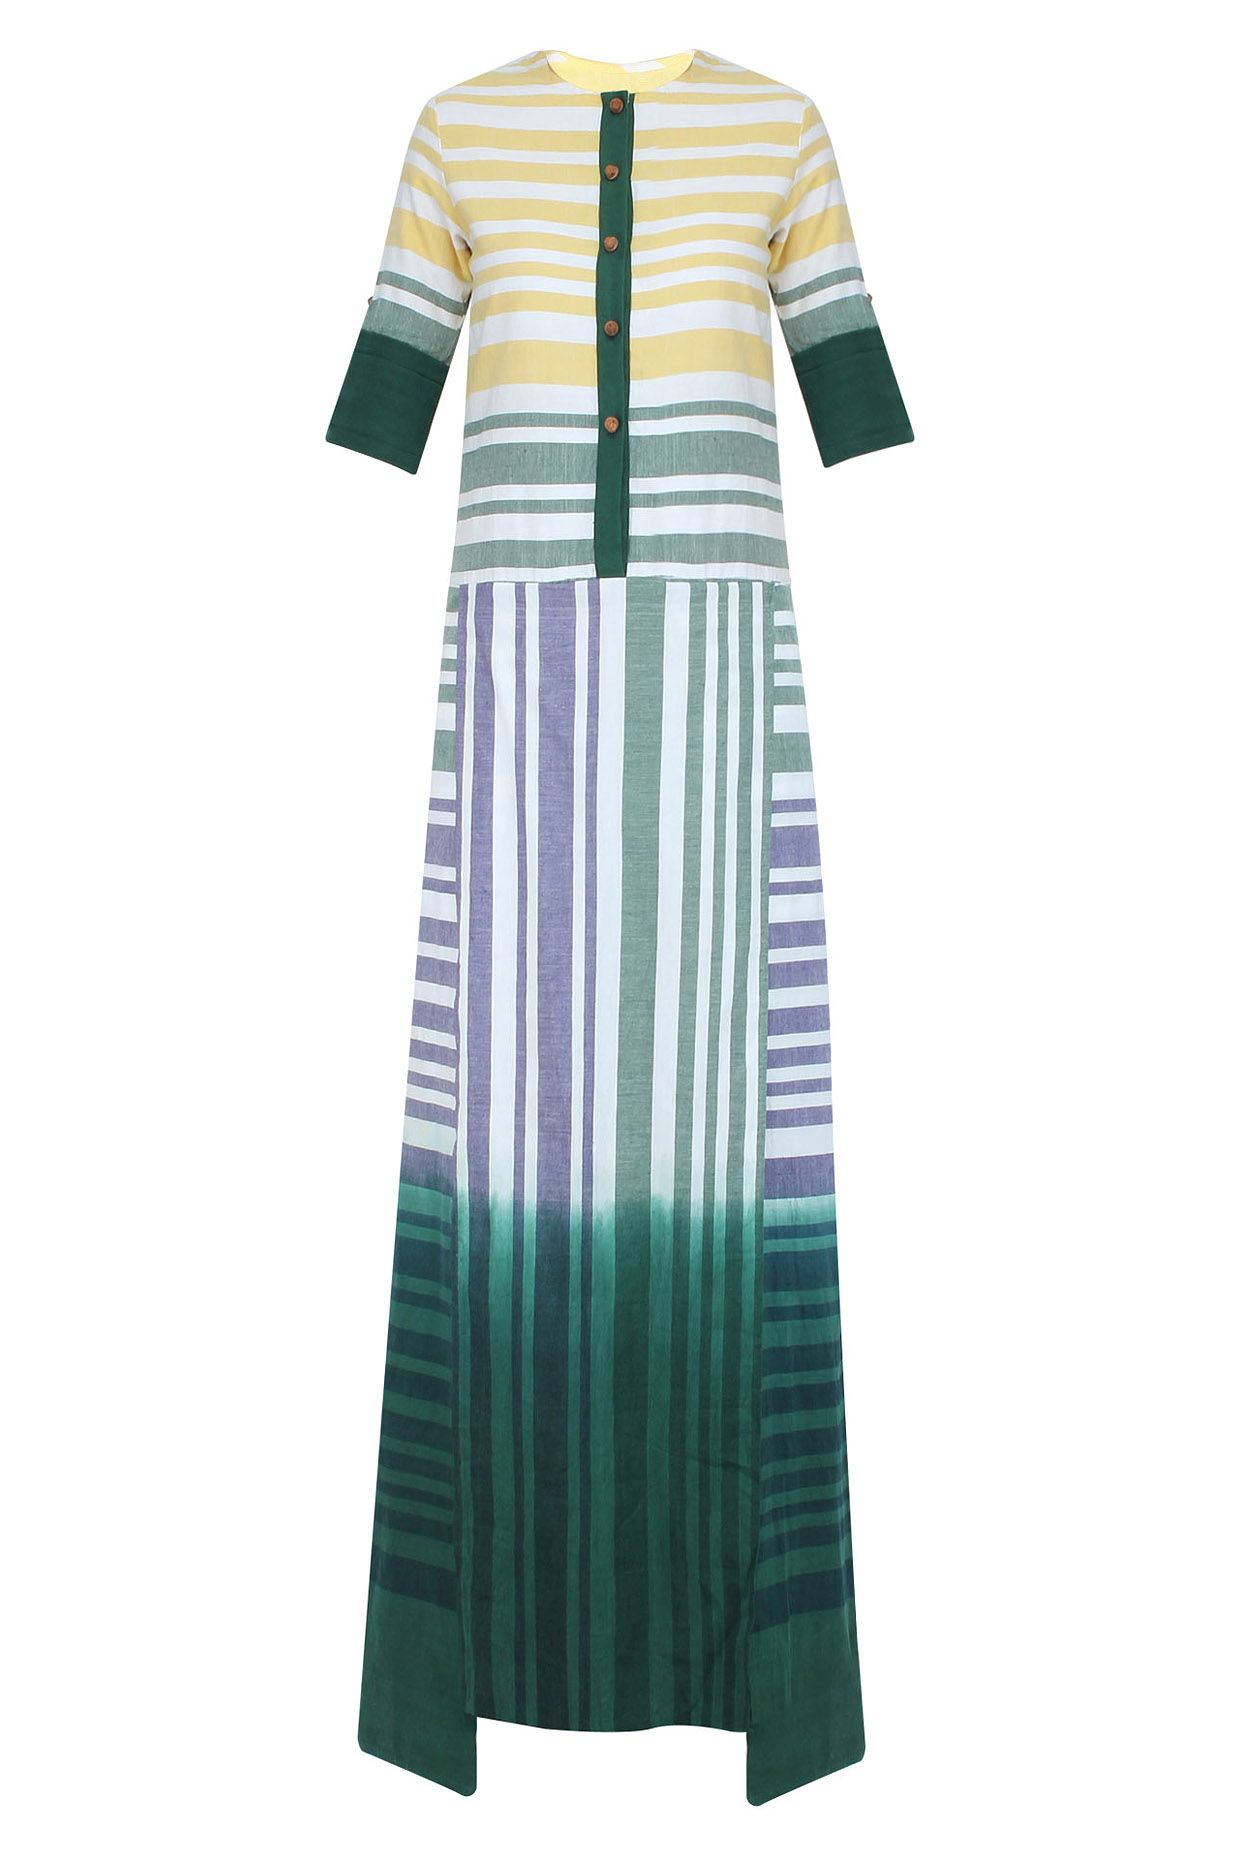 White yellow and green striped long maxi dress available only at